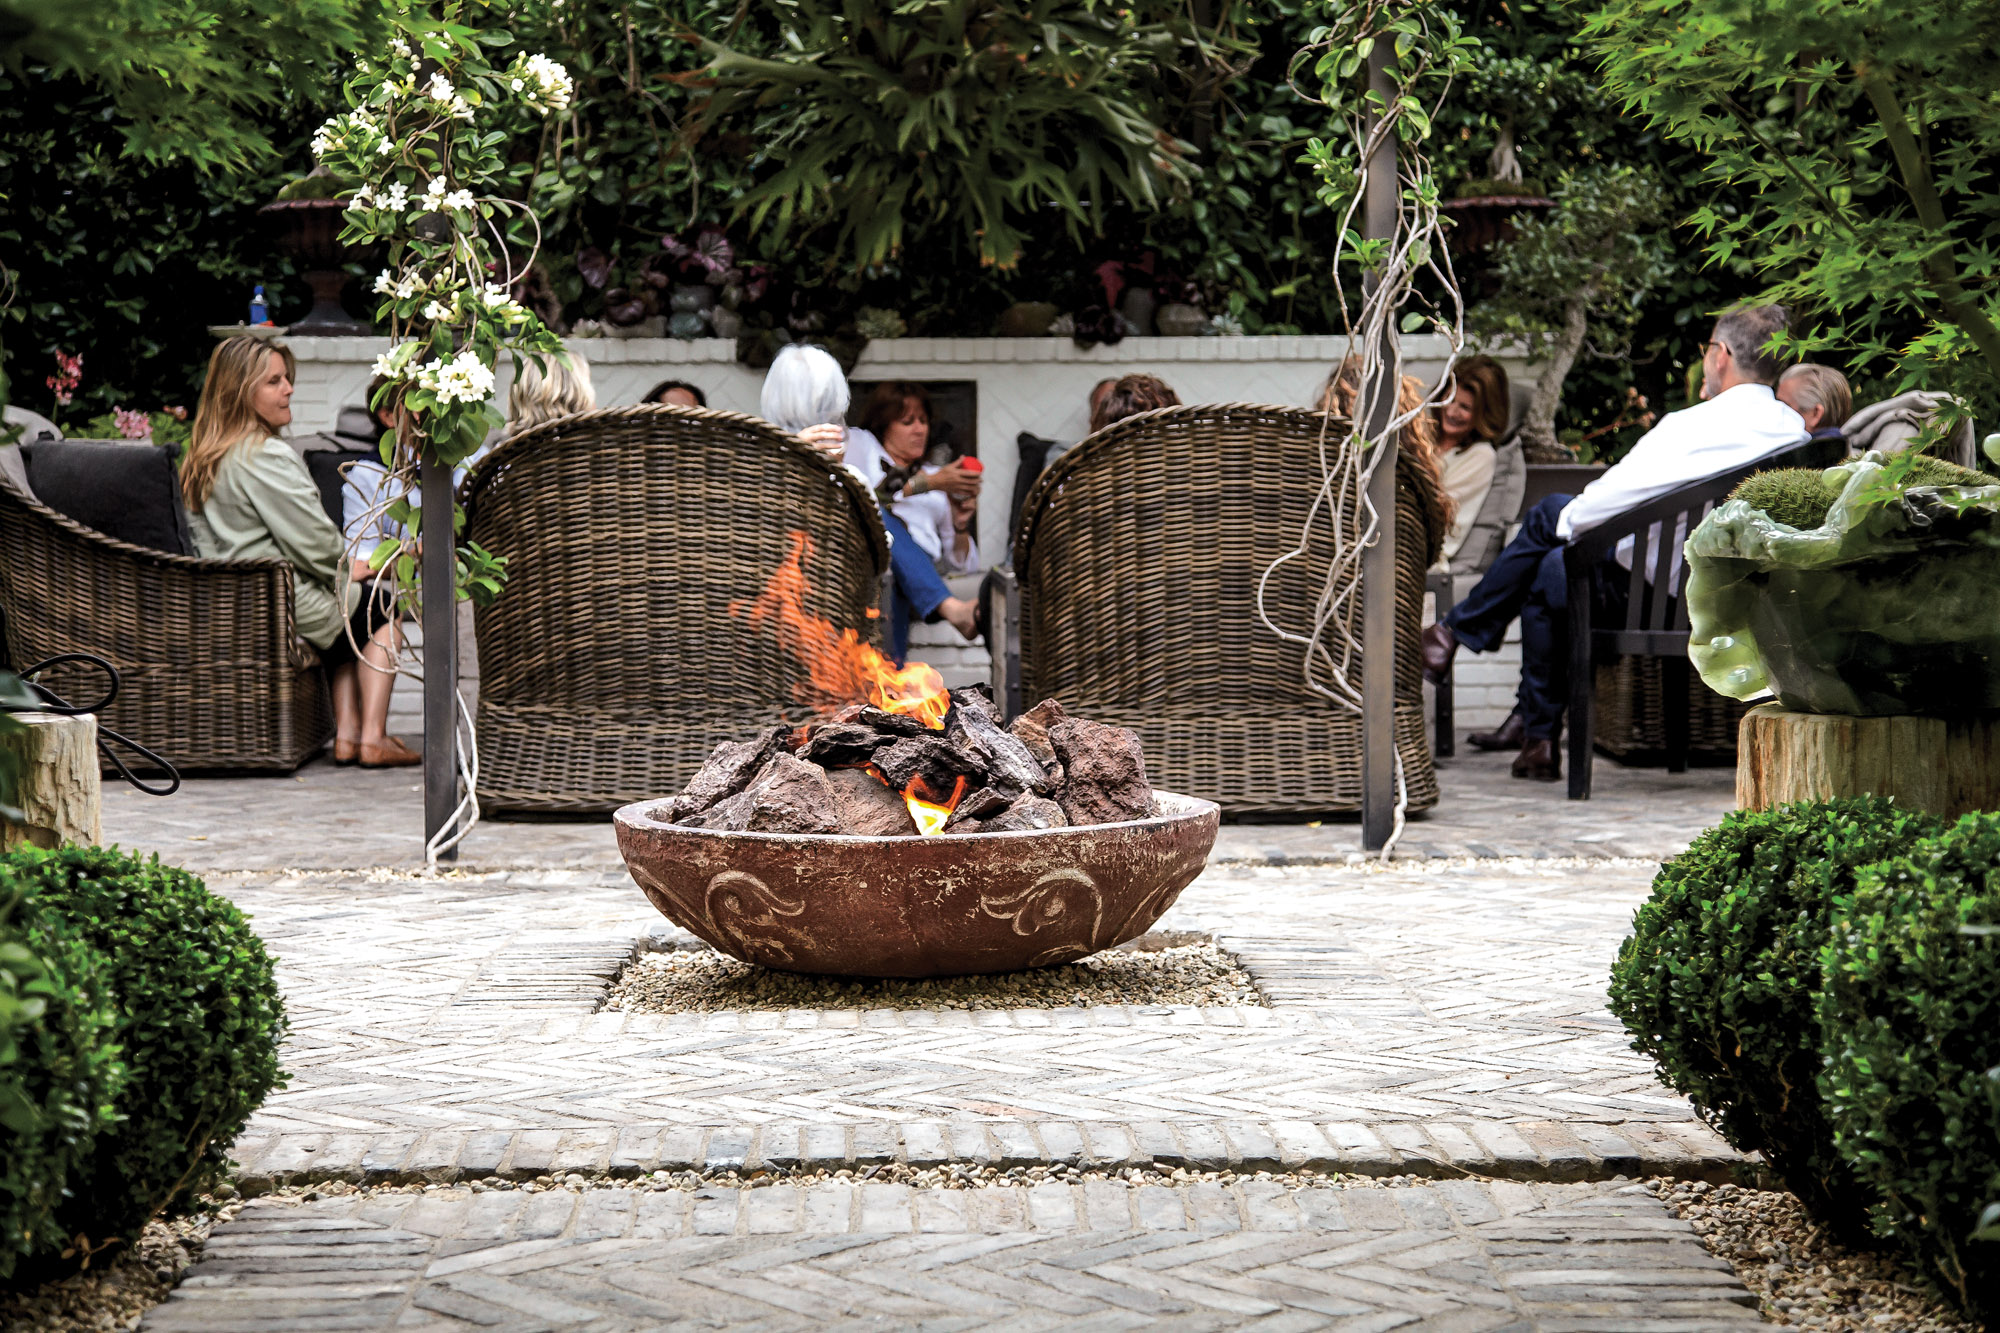 fire pit, outdoor seating